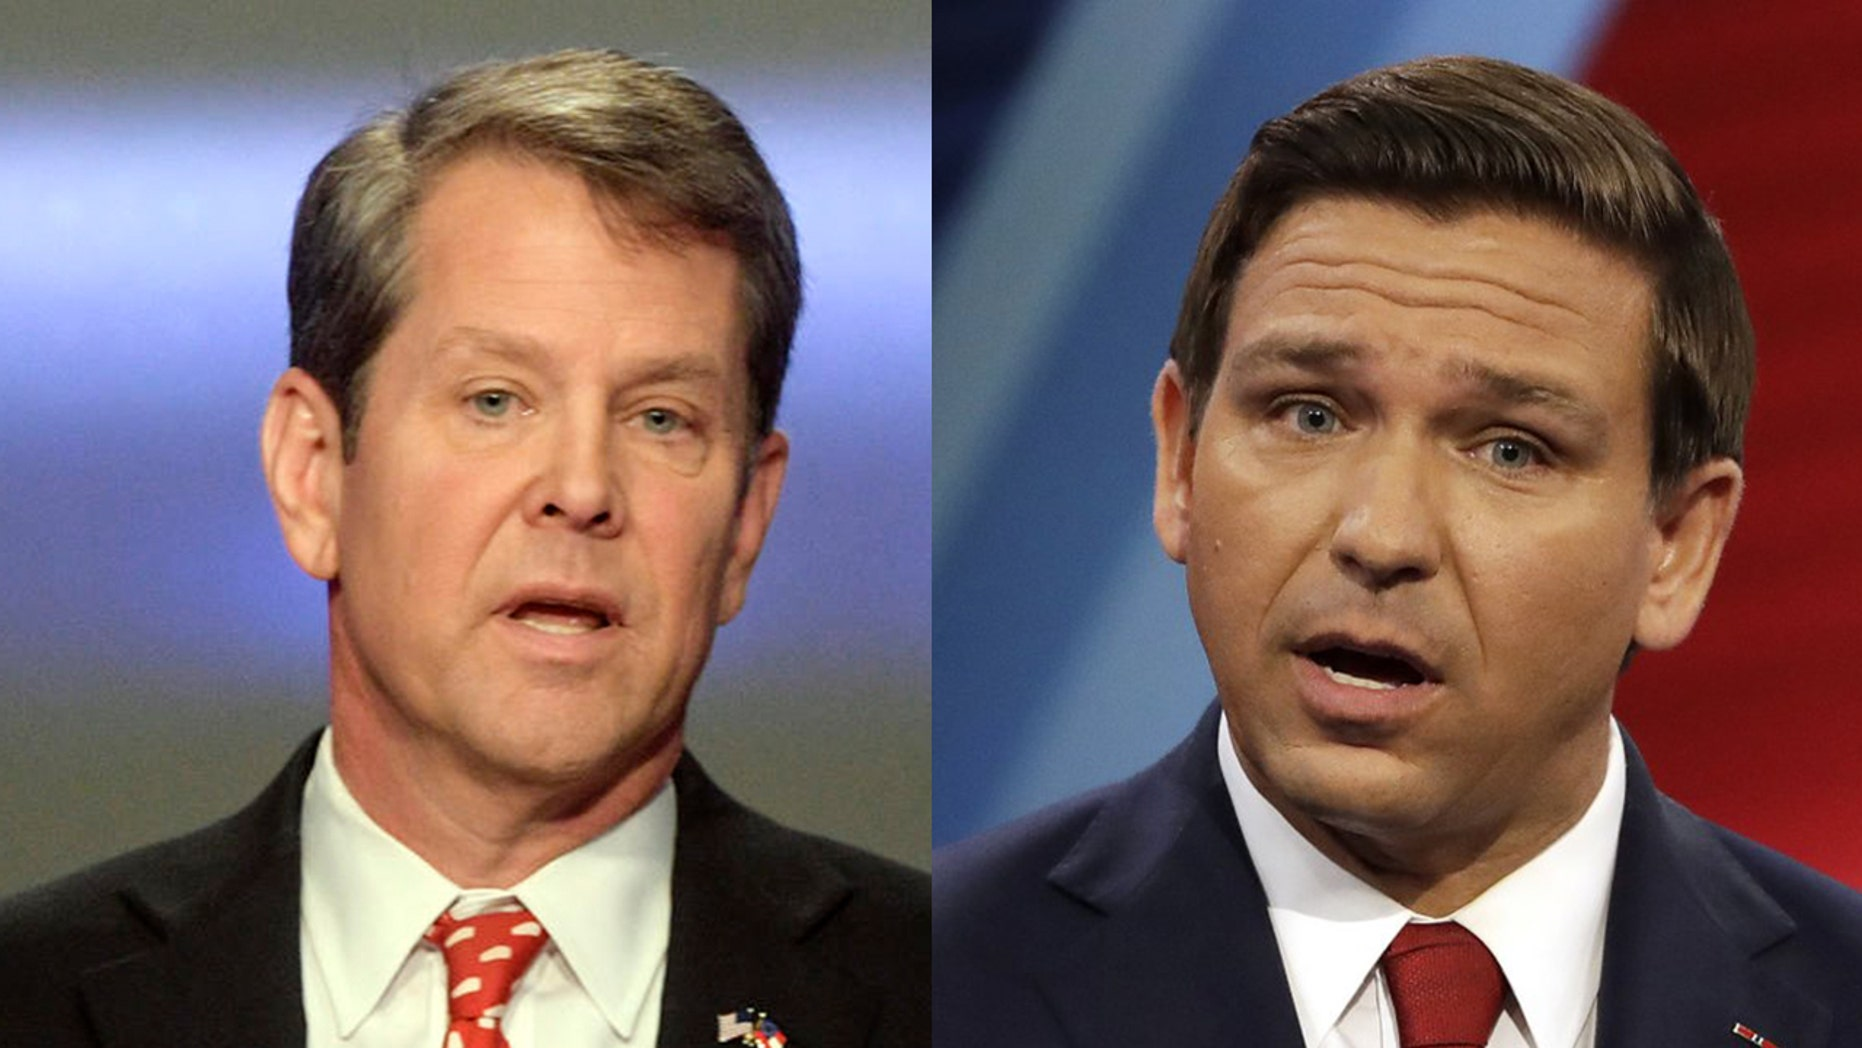 Georgia Republican Brian Kemp and Florida Republican Ron DeSantis both look certain to win their gubernatorial races. (AP)<br>